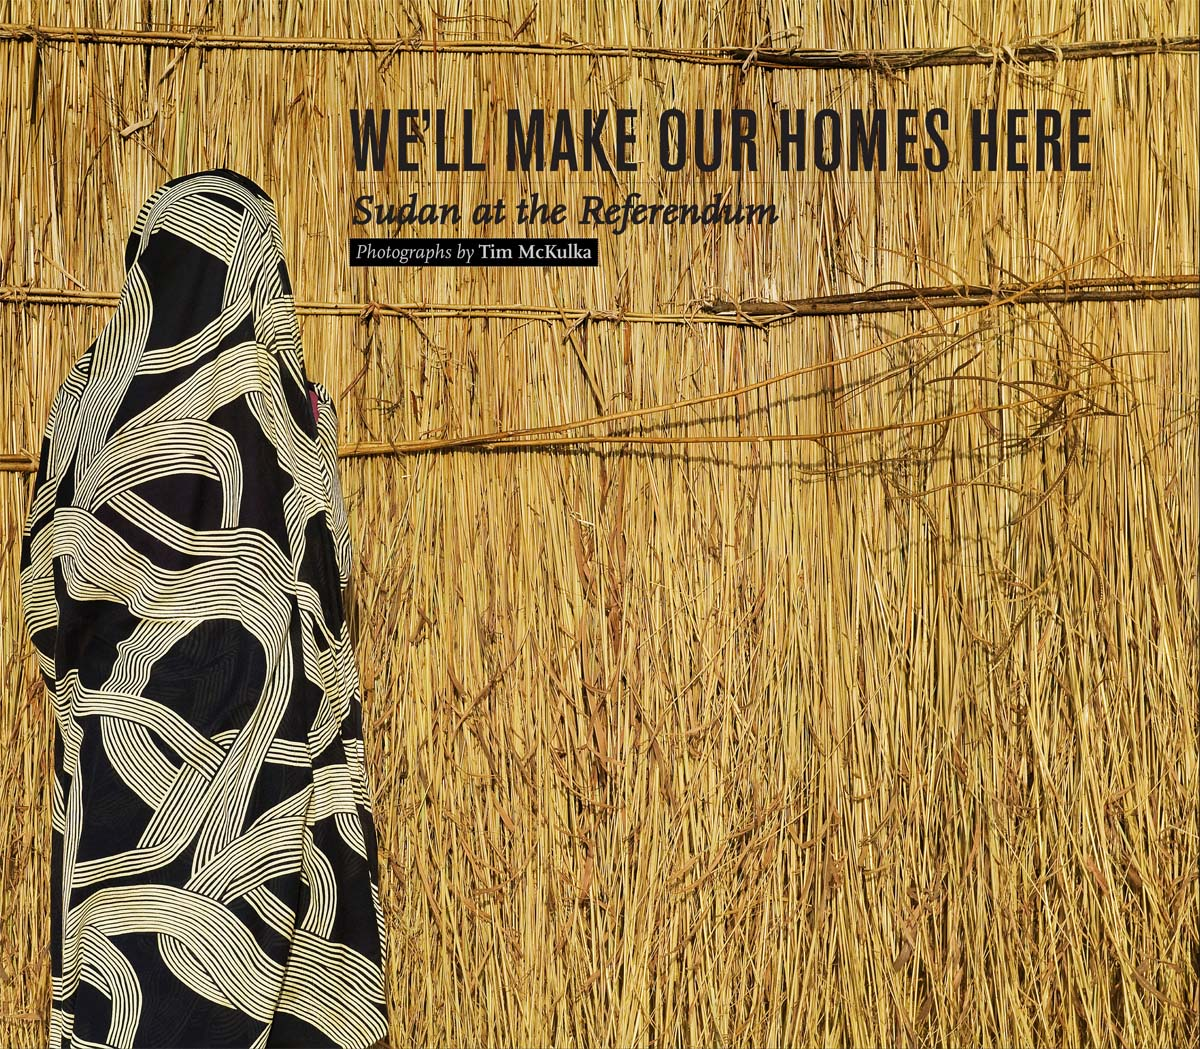 "We'll Make our Homes Here: Sudan at the ReferendumPublished 2011iPad app of We'll Make our Homes Here: Sudan at the ReferendumWe'll Make Our Homes Here: Sudan at the Referendum tells the story of the last days of Africa's largest country. With 140 photographs spanning five years, it is the first and only book that brings together images from all 25 states of what was the Republic of Sudan. We'll Make Our Homes Here is presented in both English and Arabic and combines photographs of the rich cultural diversity of the Sudanese people with written contributions about the crucial issue of Sudanese identity, which has been both a source of pride and driver of conflict throughout Sudan's history.Essays in response to following questions:How do you define Sudan? And how has Sudan defined you? Who is a Sudanese? And what does the Sudanese nation signify to you in personal, cultural or political terms?""…a remarkable new book of essays and photographs … McKulka's pictures show Sudan in all its topographical and human variety: deserts, mountains, rivers, and the oil-boom capital of Khartoum; nomadic cattle-herders, Arab traders, and Nuer tribesmen with ritual scarification…The book's 13 essays, most of them intensely personal and all written by Sudanese, are shot through with nostalgia for this densely layered past and for the vanished ethos of tolerance that allowed such varied peoples to live alongside one another.""-James Traub, Foreign Policy MagazinePresented at the Woodrow Wilson International Center for ScholarsBBC Audio Slideshow: Across the two Sudans"